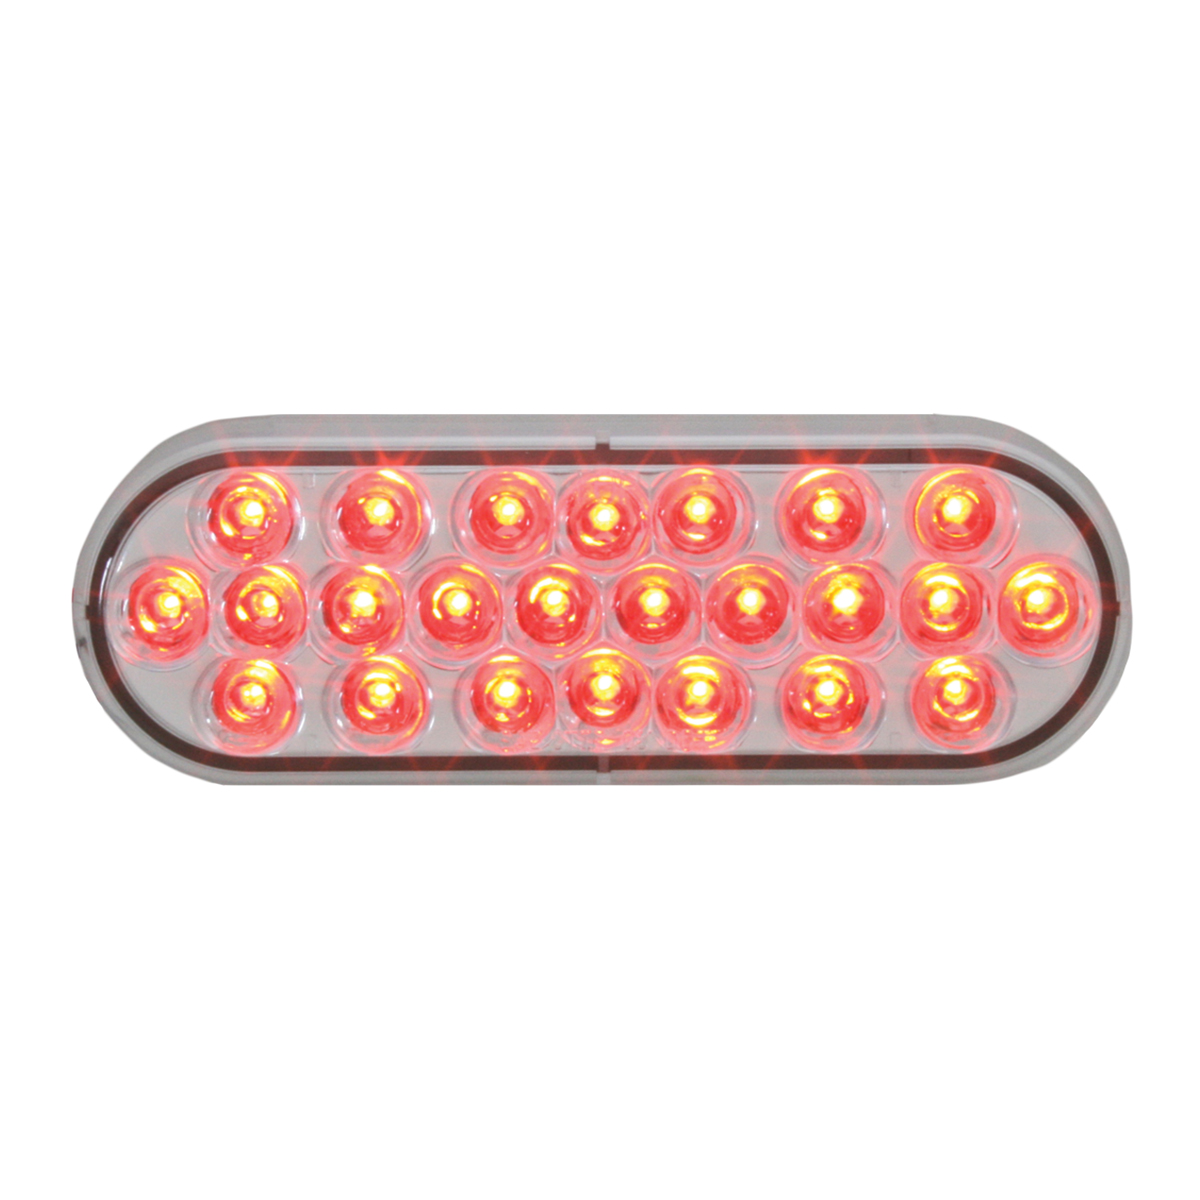 #78234 Oval Pearl LED Flat Red/Clear Light